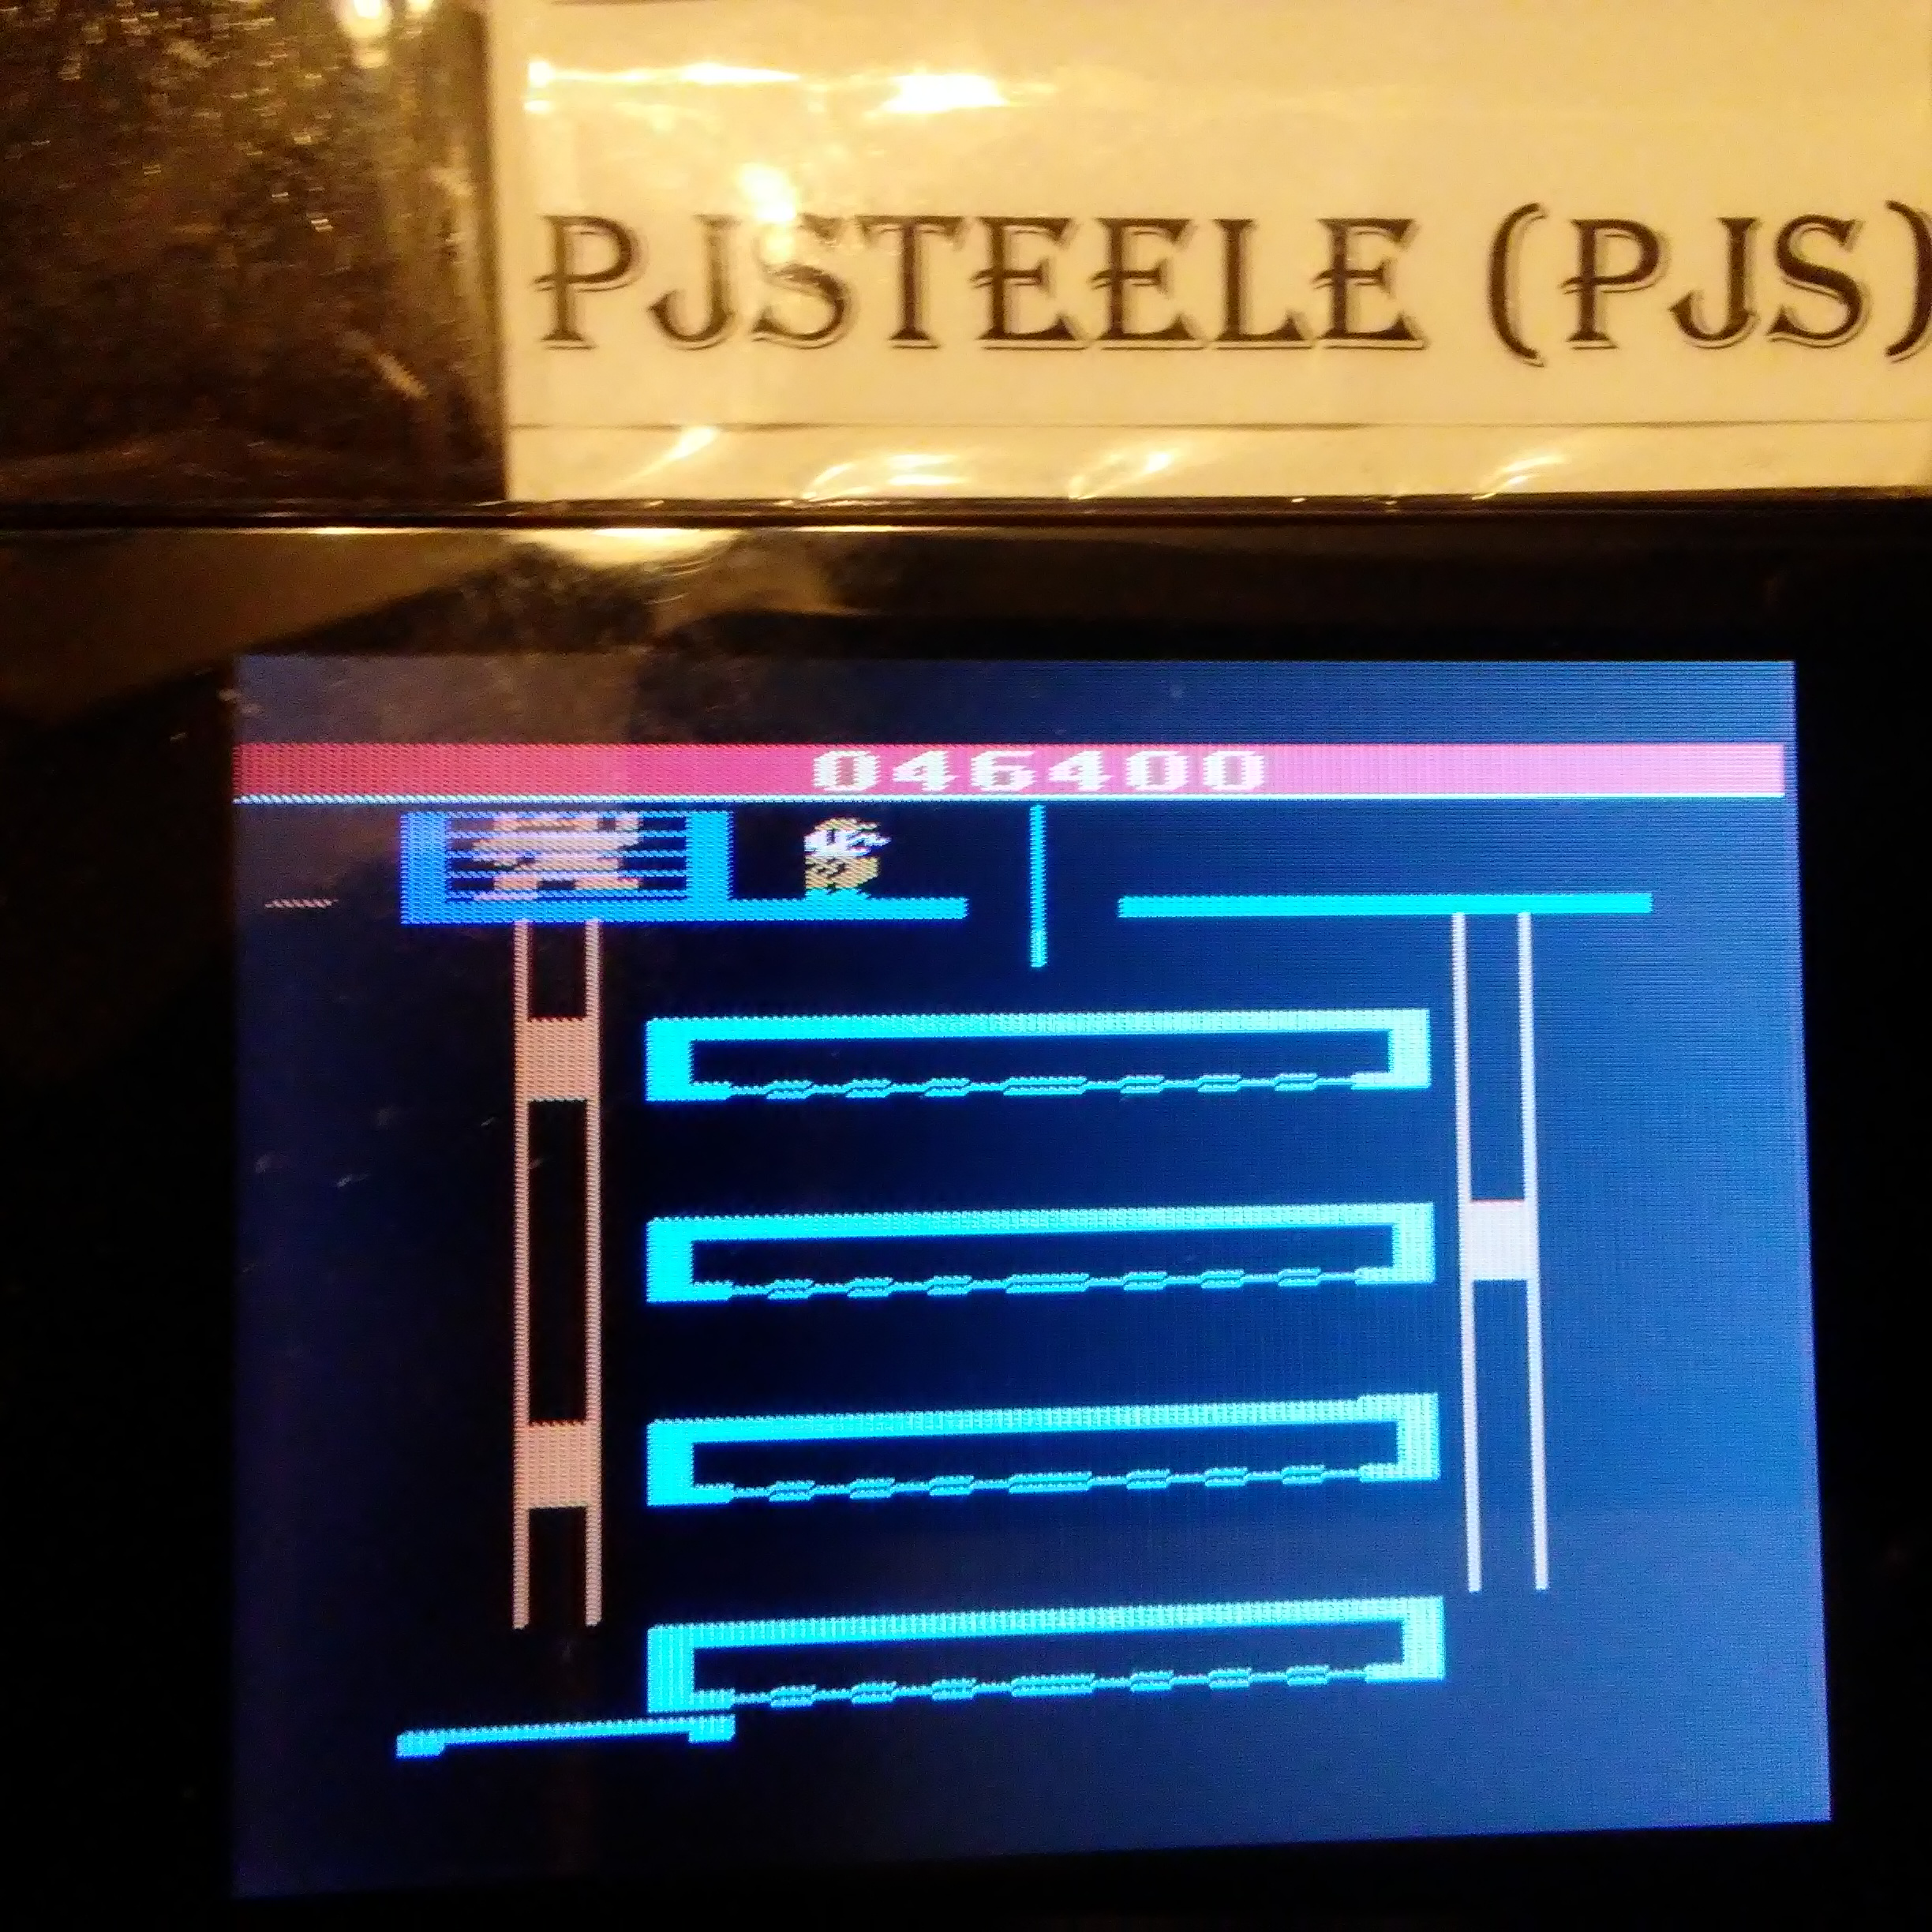 Pjsteele: Donkey Kong Junior (Atari 2600 Emulated) 46,400 points on 2018-02-16 19:57:26